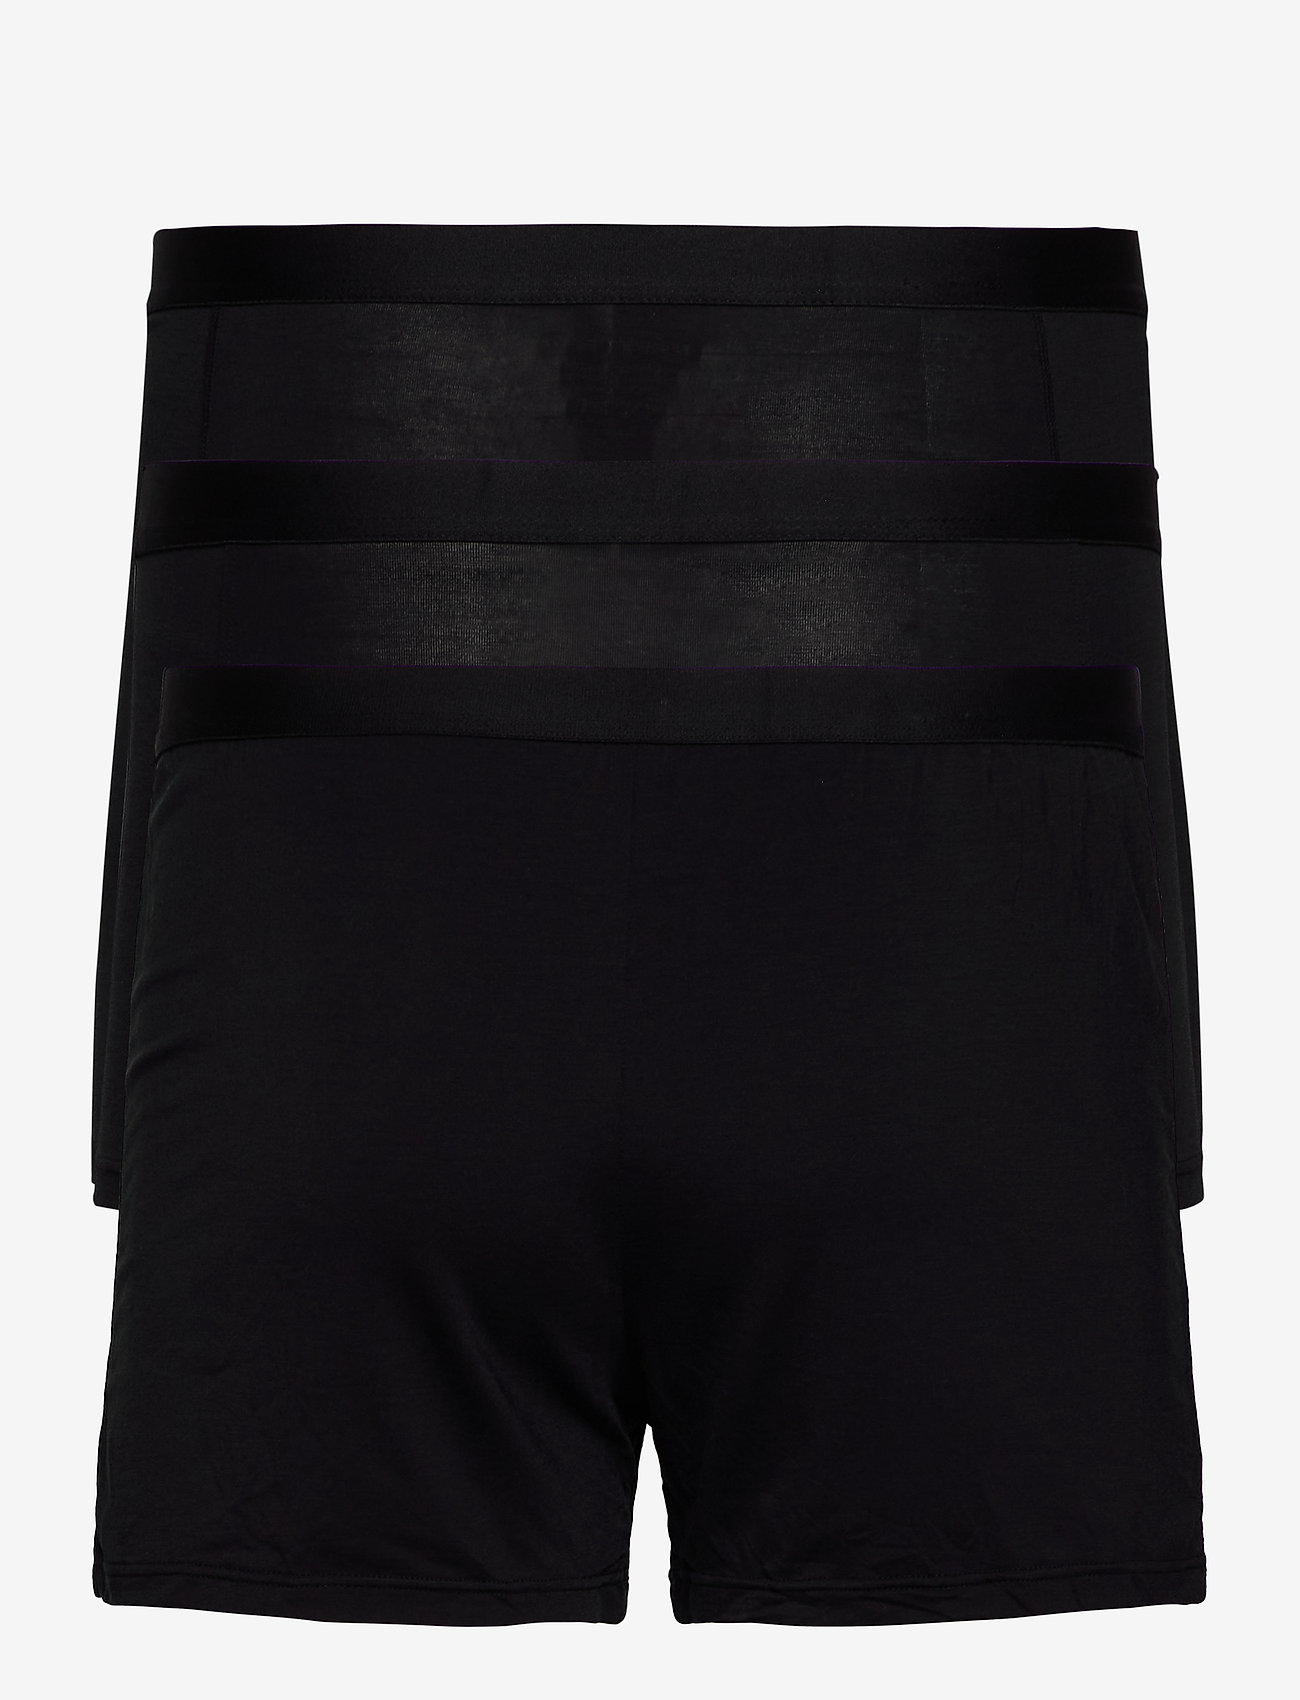 Björn Borg SHORTS SAMMY SOLID - Shorts BLACK BEAUTY - Menn Klær